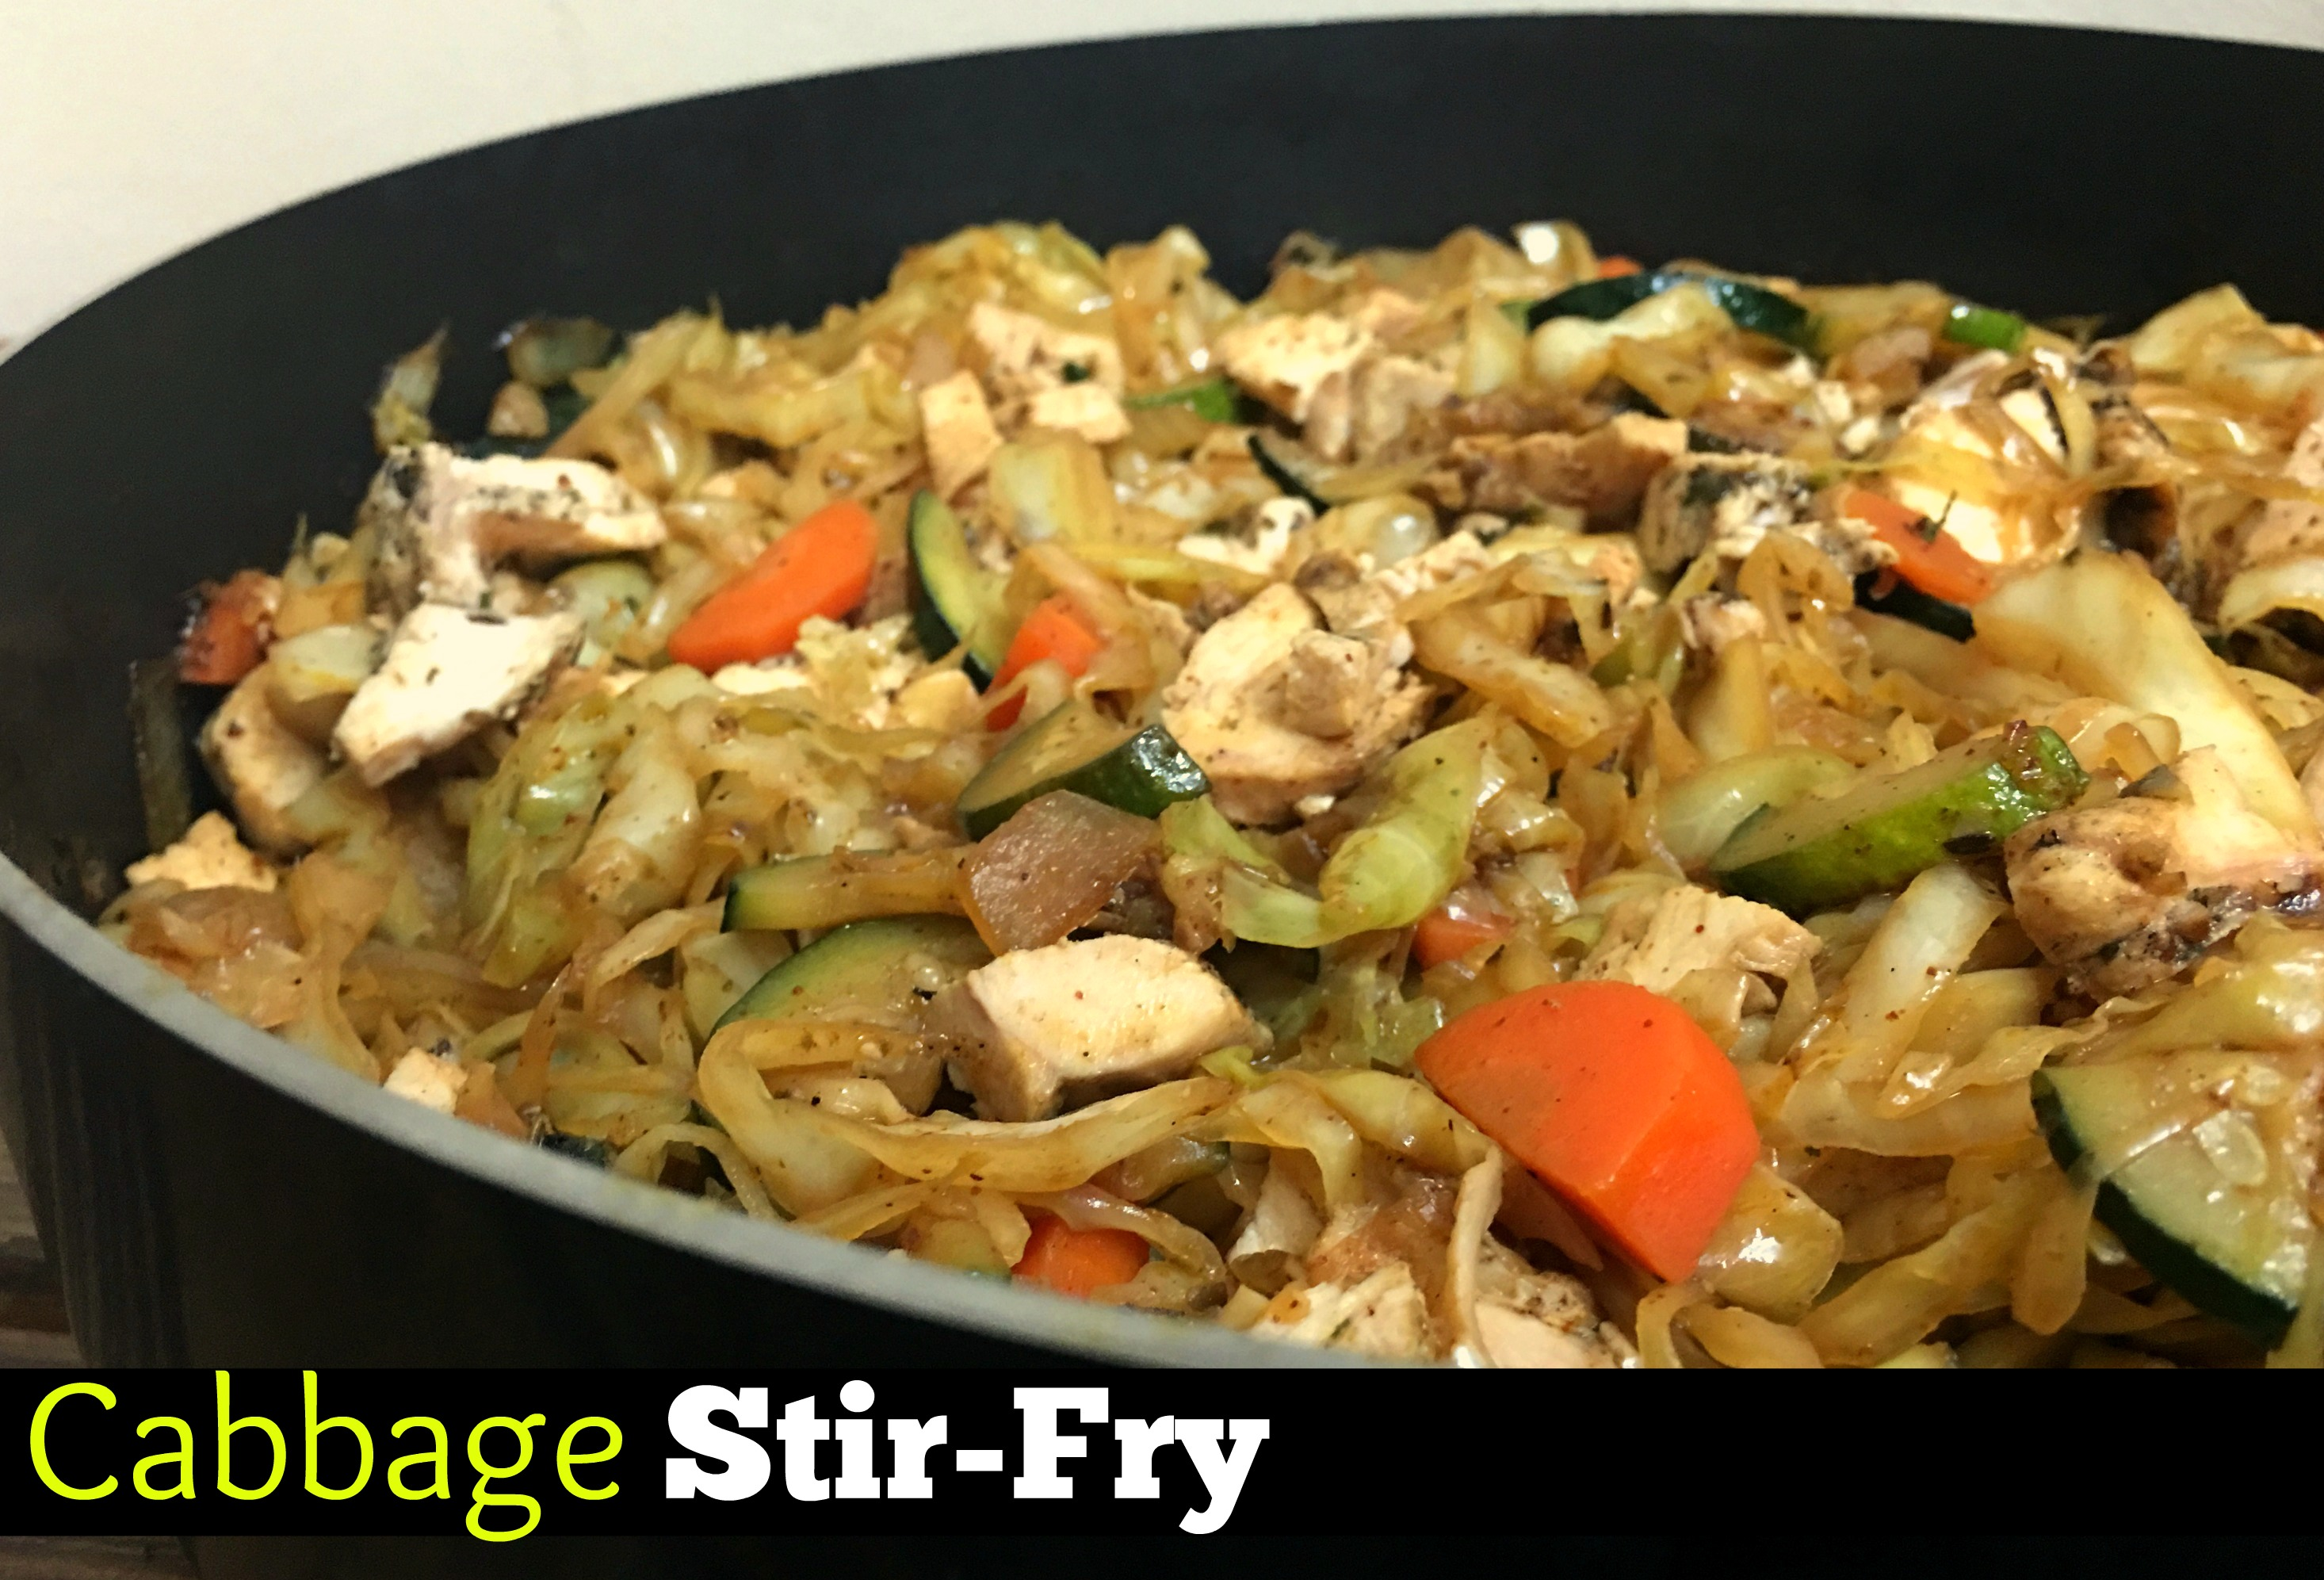 Cabbage Stir-Fry